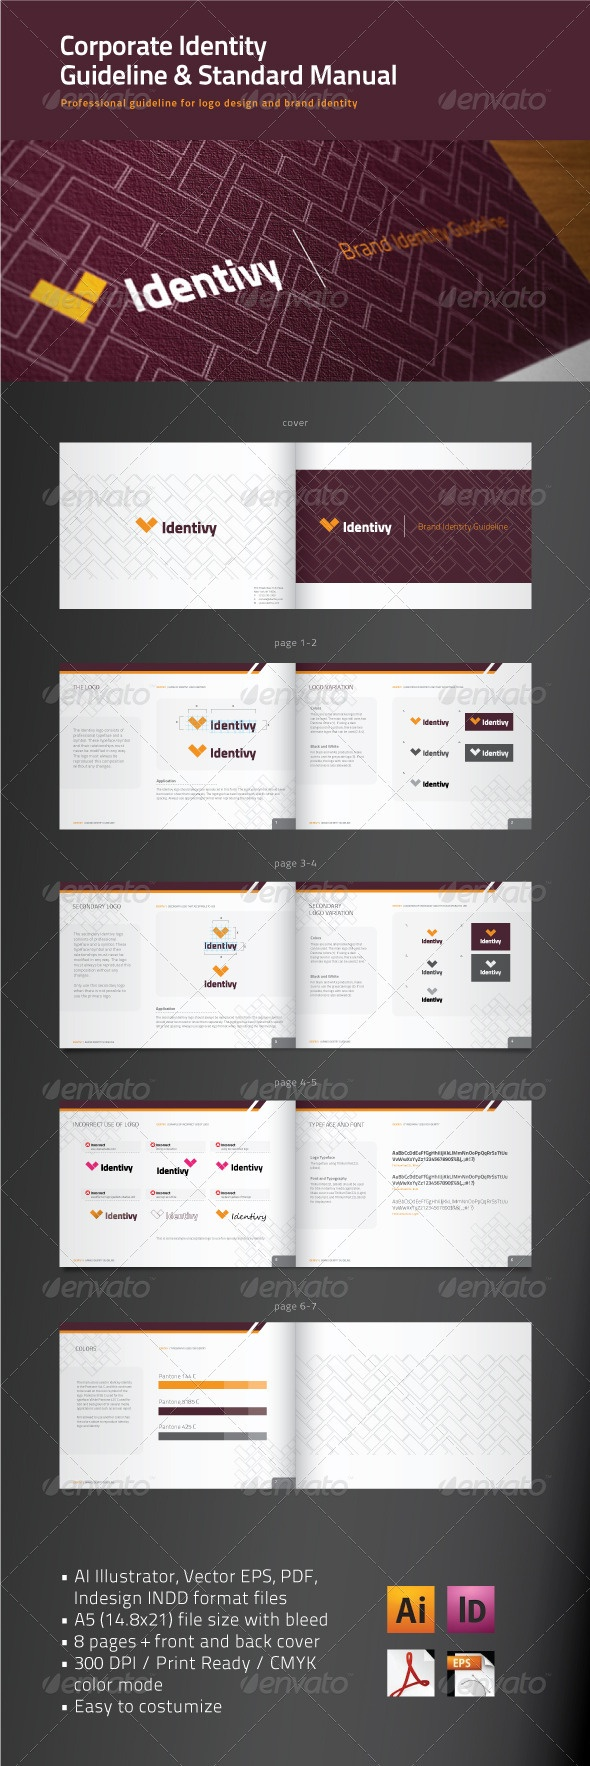 Free Brand Manual Template » VFXFuture.net